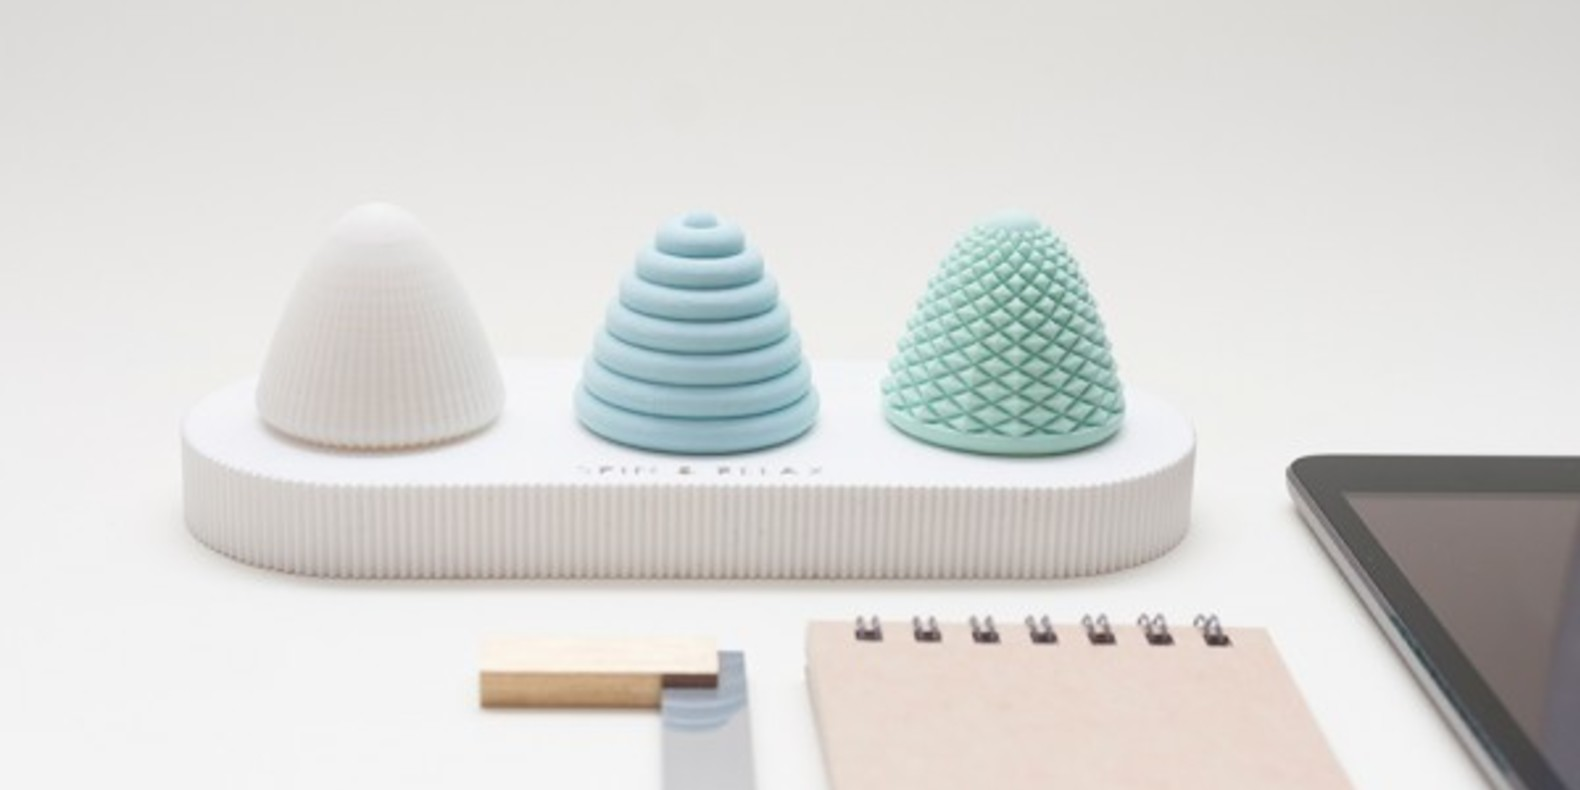 spin and relax Spin&Relax uau project toupies spining top desk toy cults fichier 3D STL